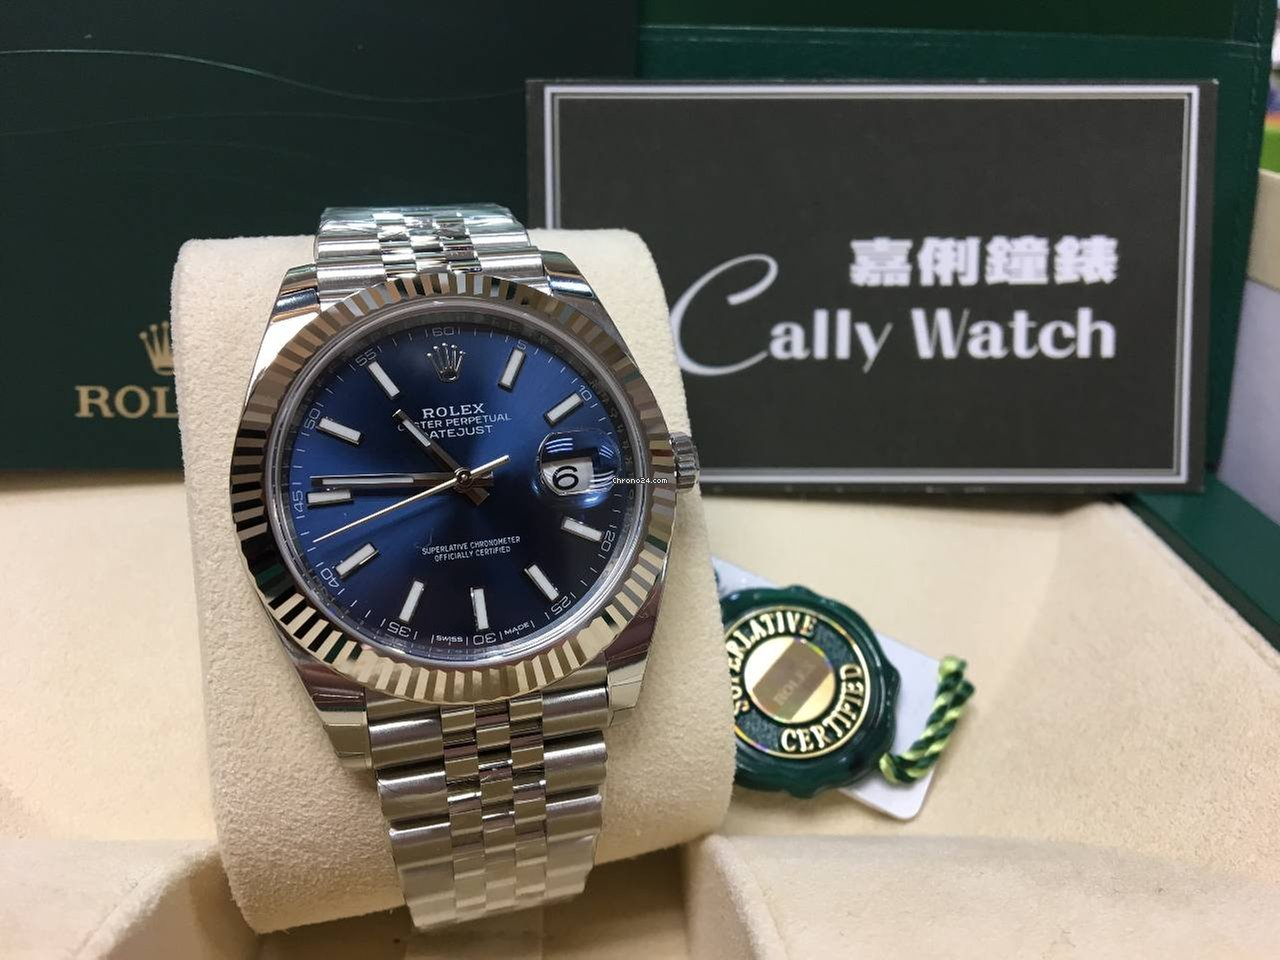 Rolex Cally New Datejust 41mm 126334 Blue Dial For